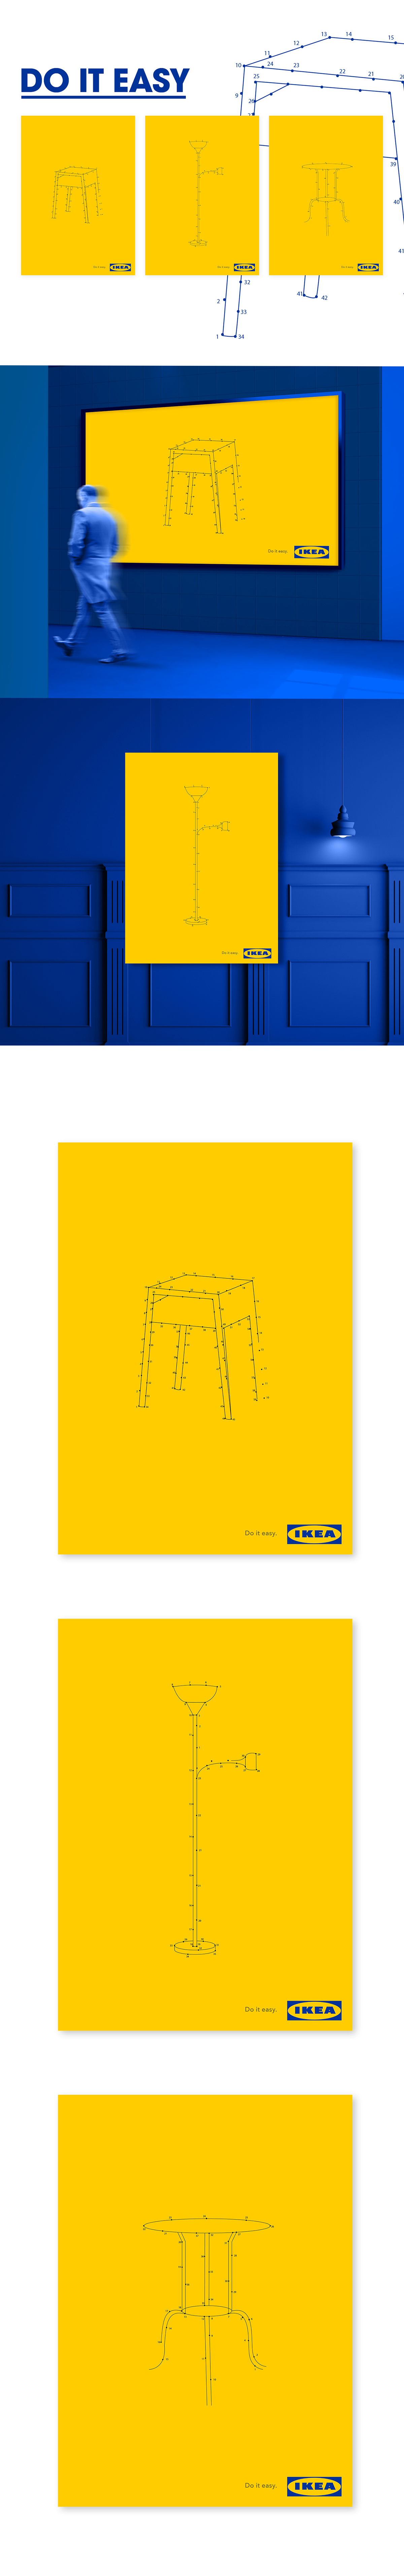 Ikea Poster Ikea Poster On Pantone Canvas Gallery